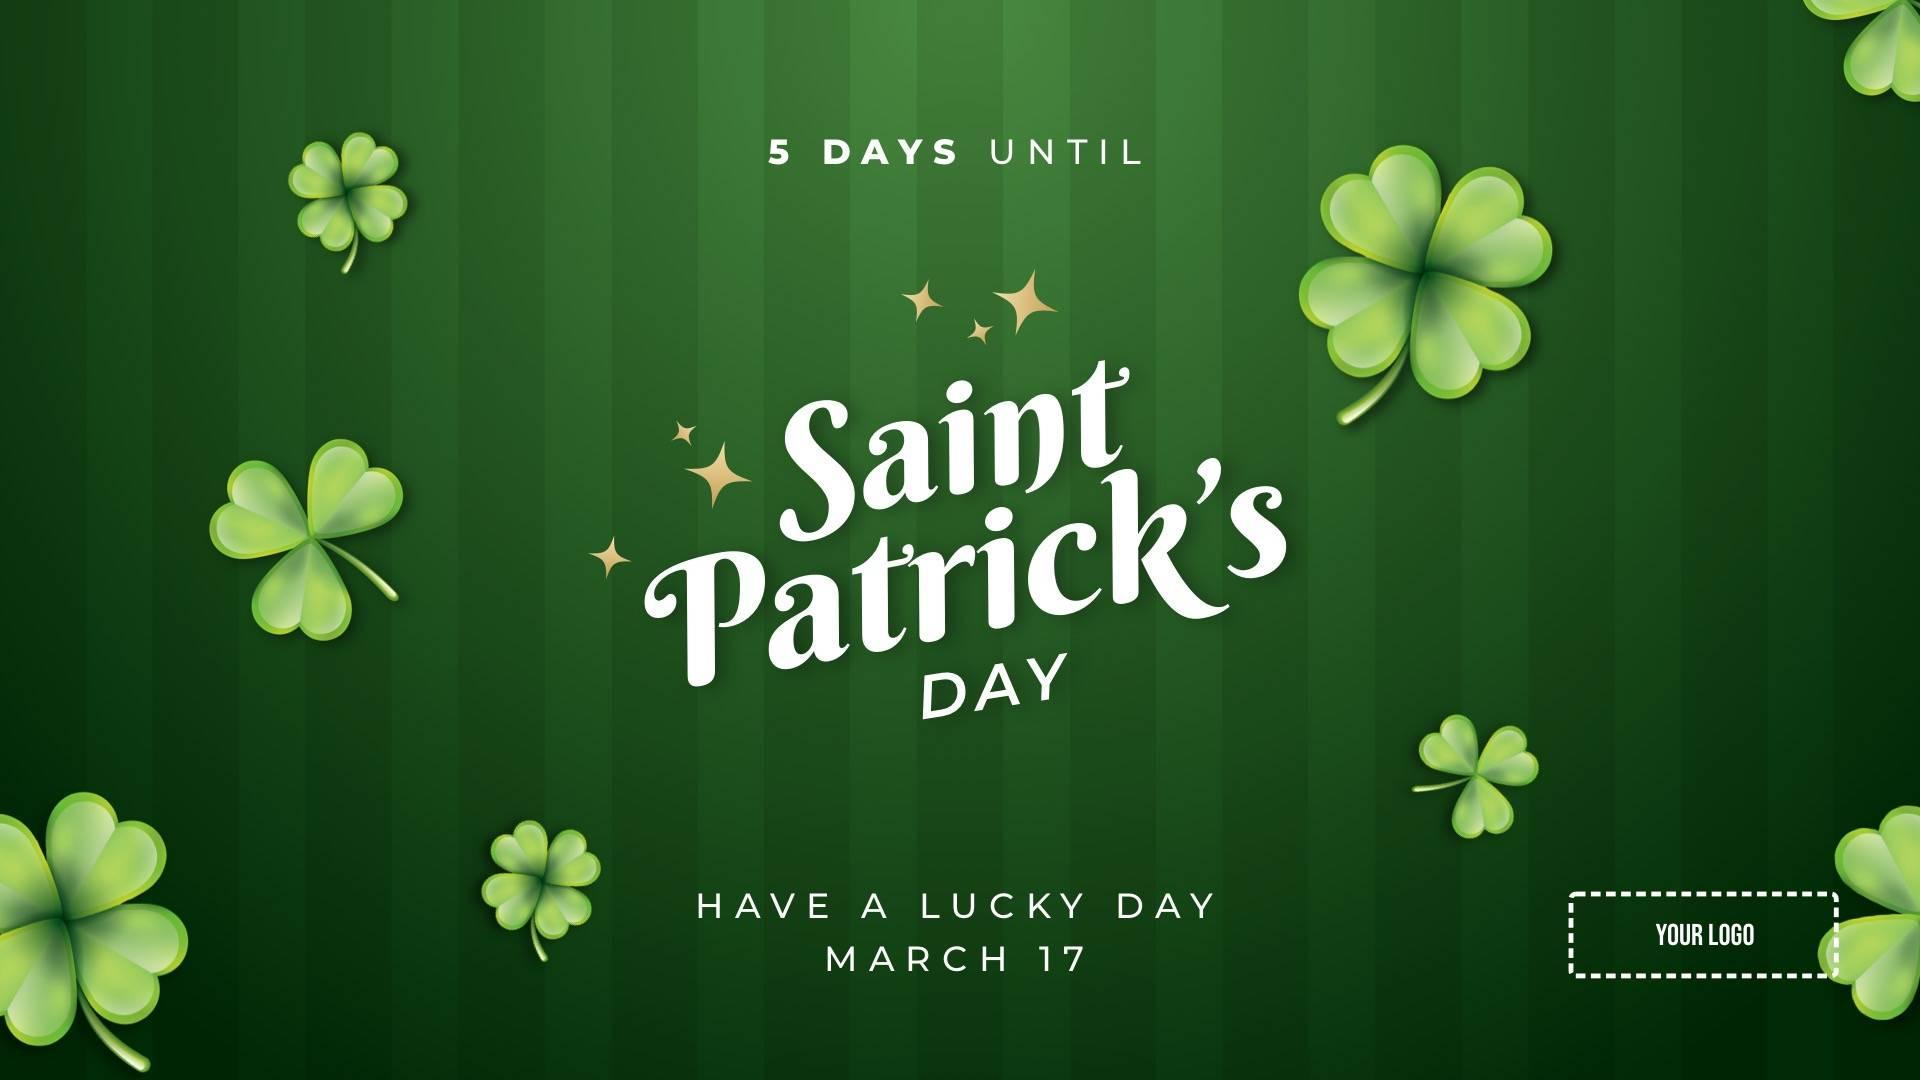 Saint Patrick's Day Countdown Digital Signage Template